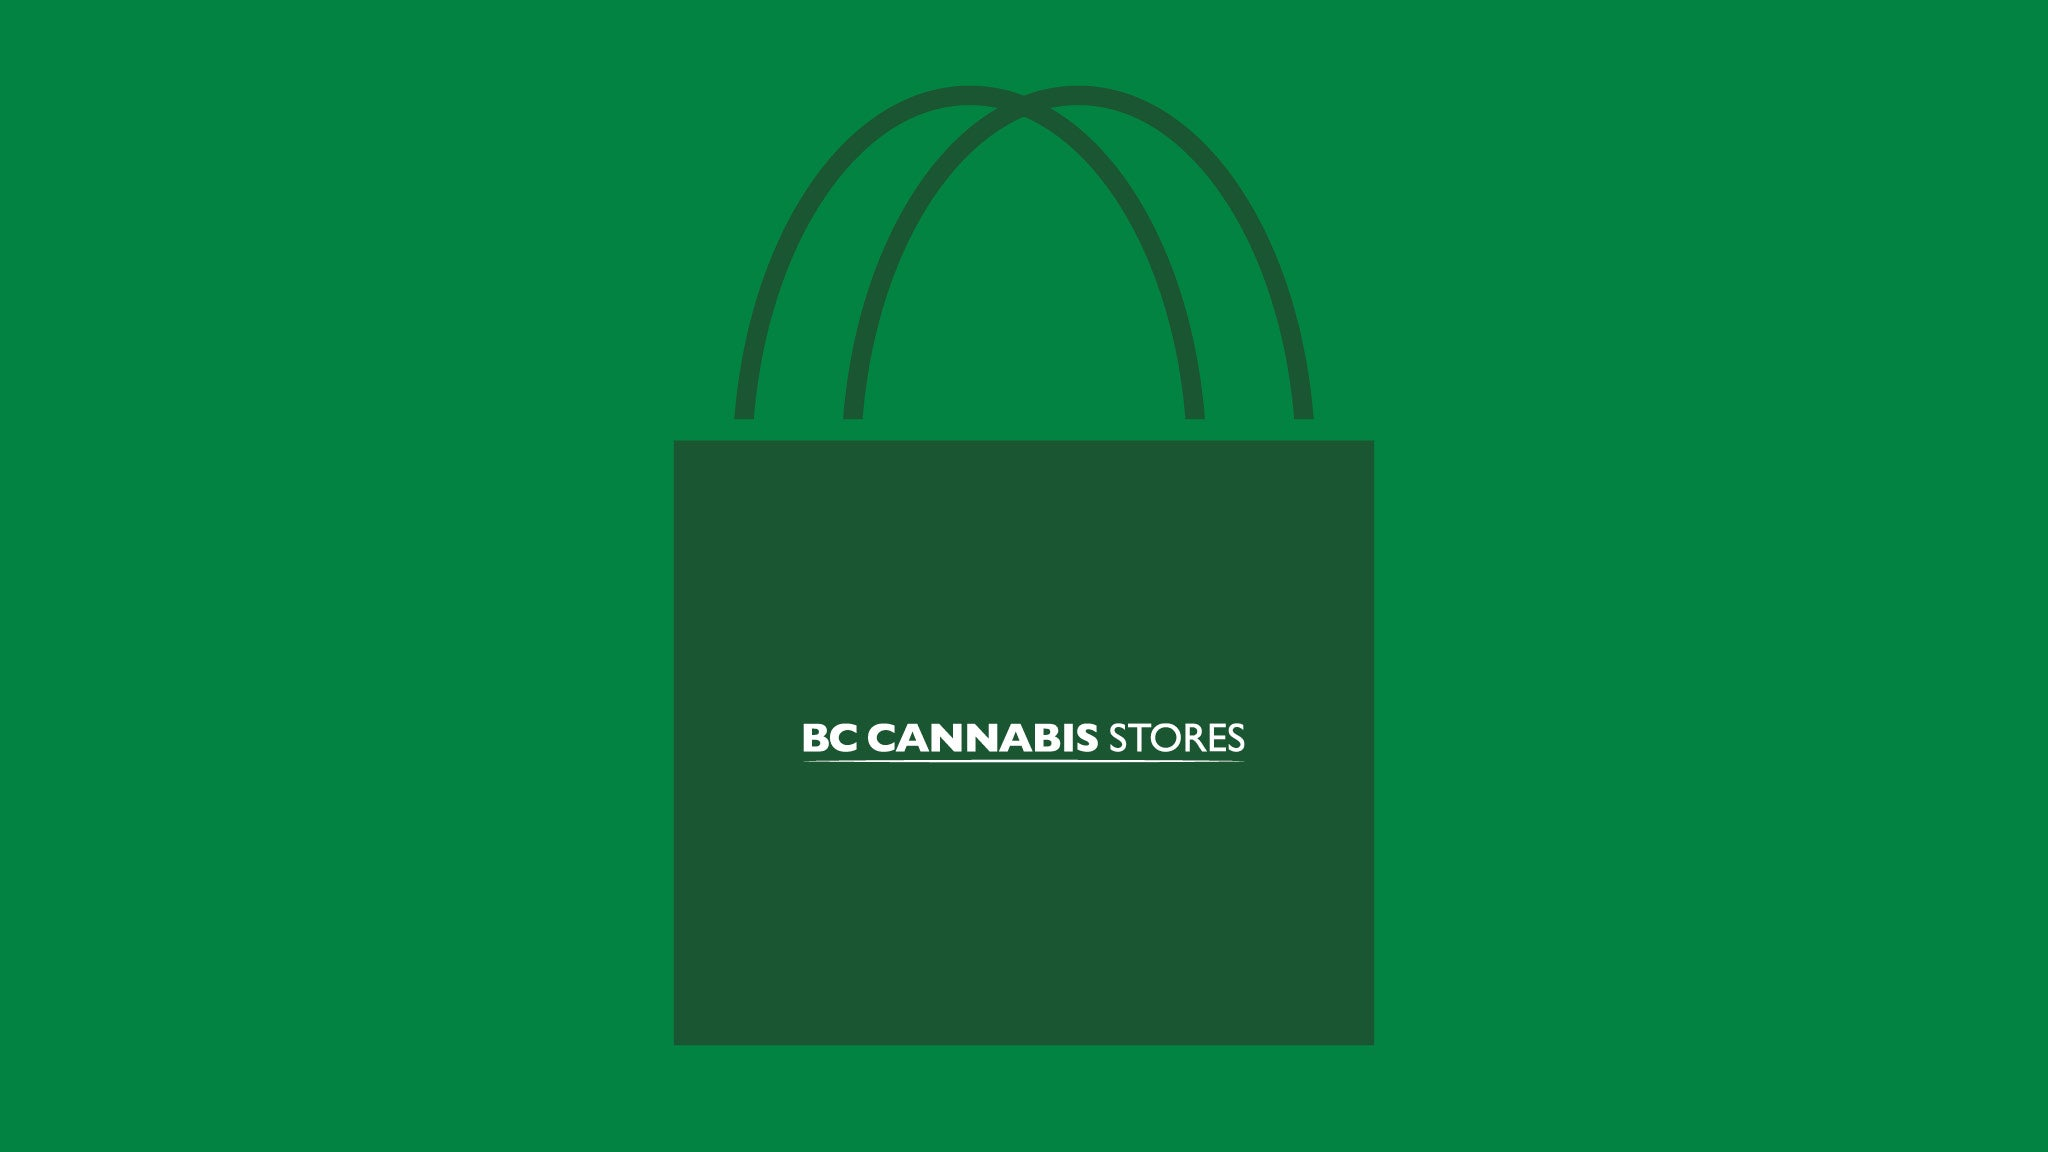 5 great reasons to shop at BC Cannabis Stores